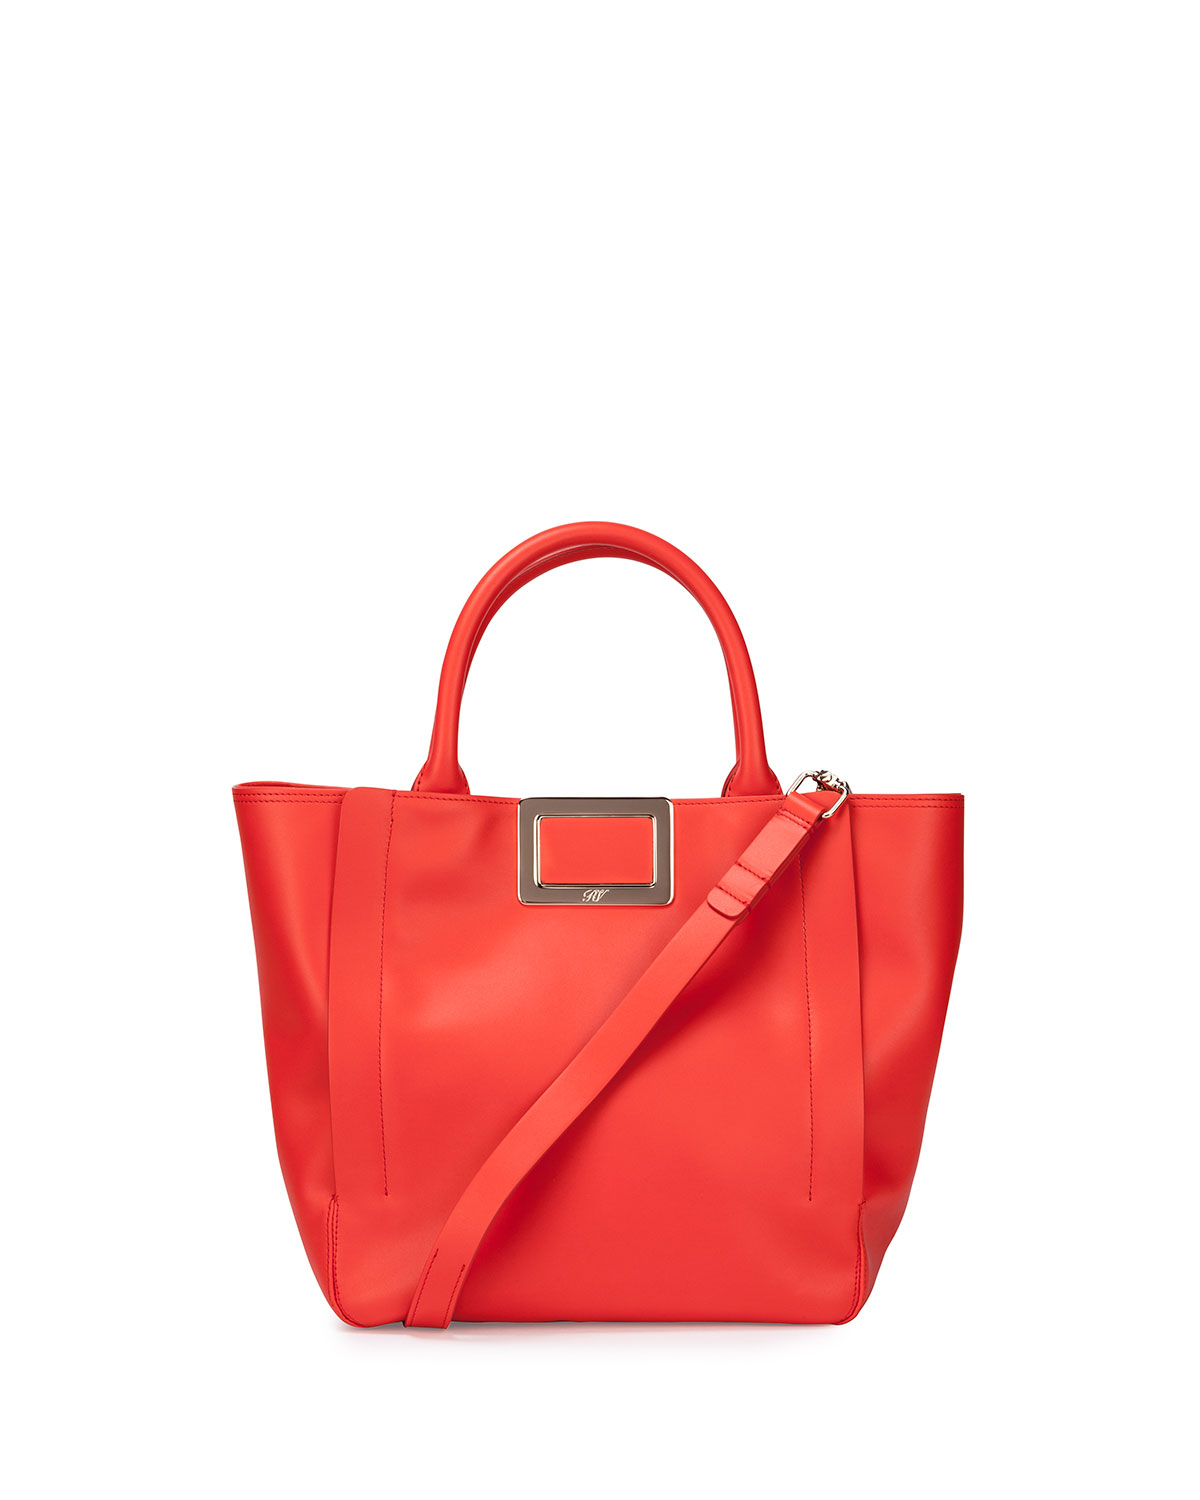 Ines Small Shopping Bag, Coral